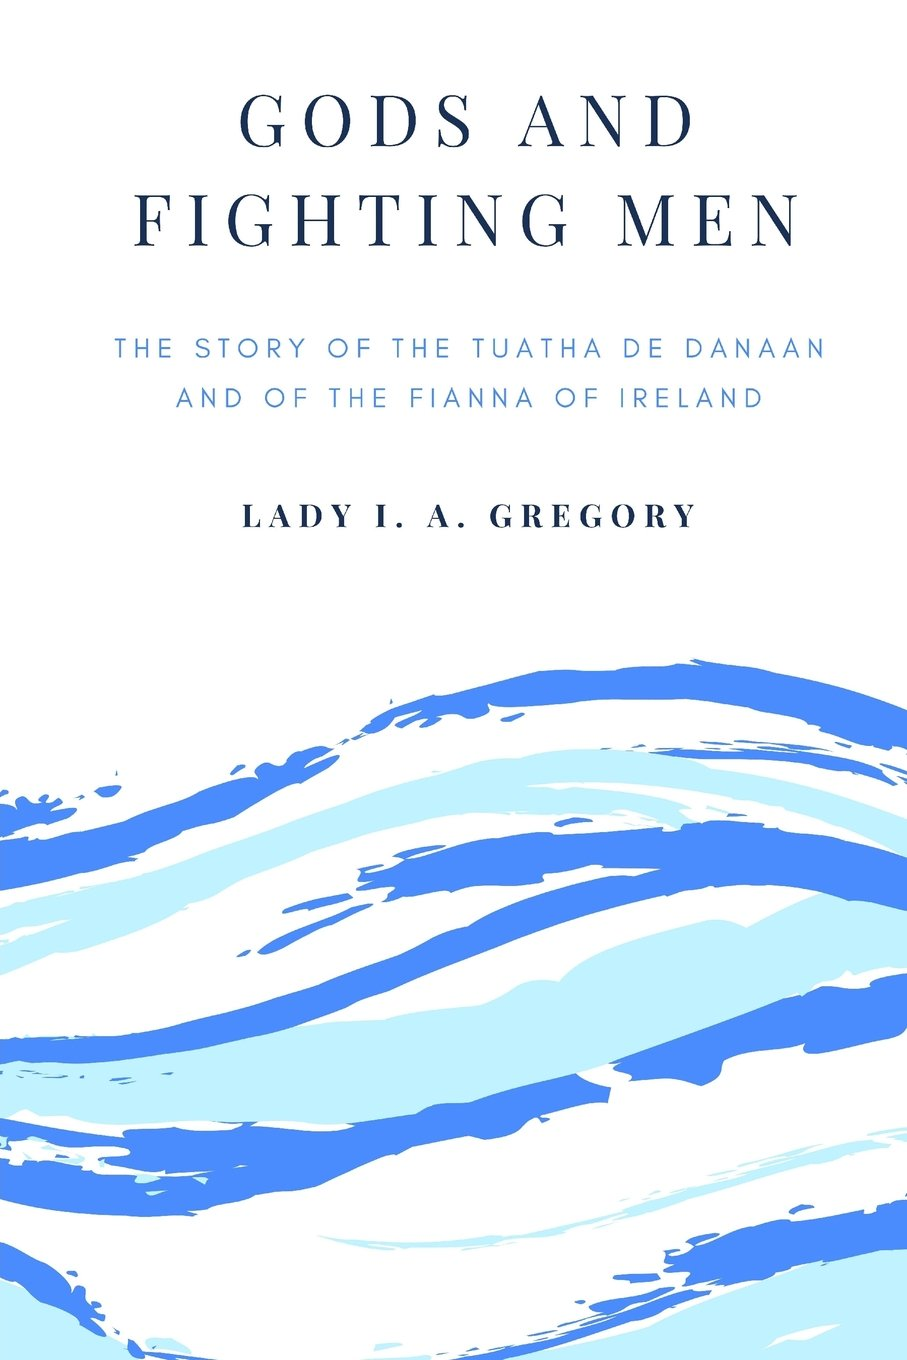 Gods And Fighting Men: The Story Of The Tuatha De Danaan And